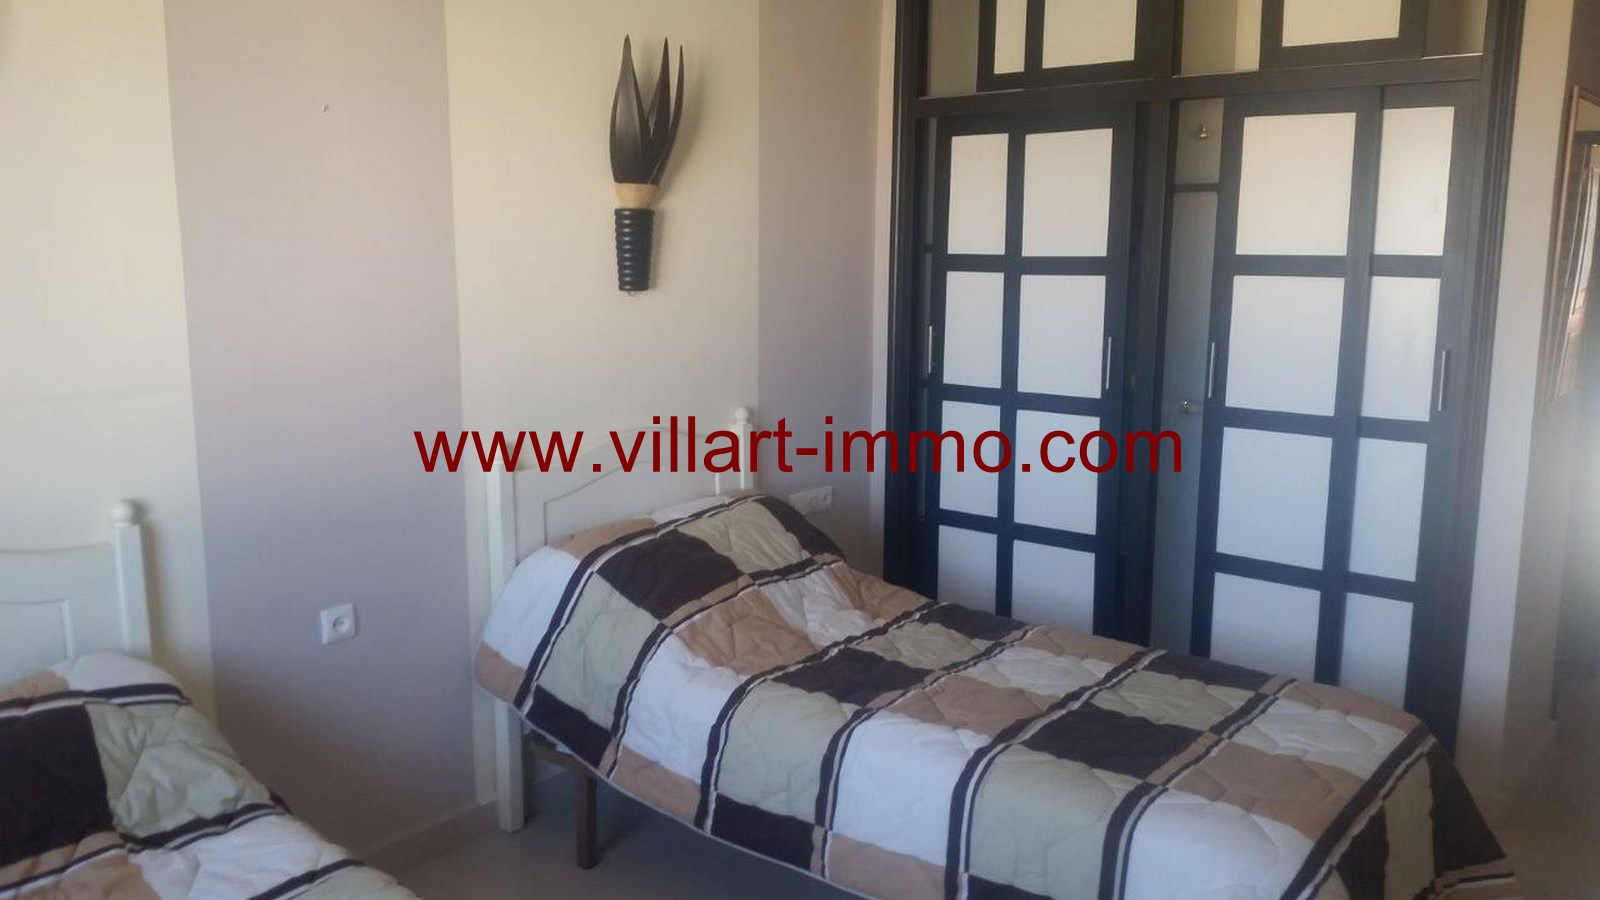 18-To Let-Villa-Furnished-Tangier-Bedroom 4-LV986-Villart-Immo